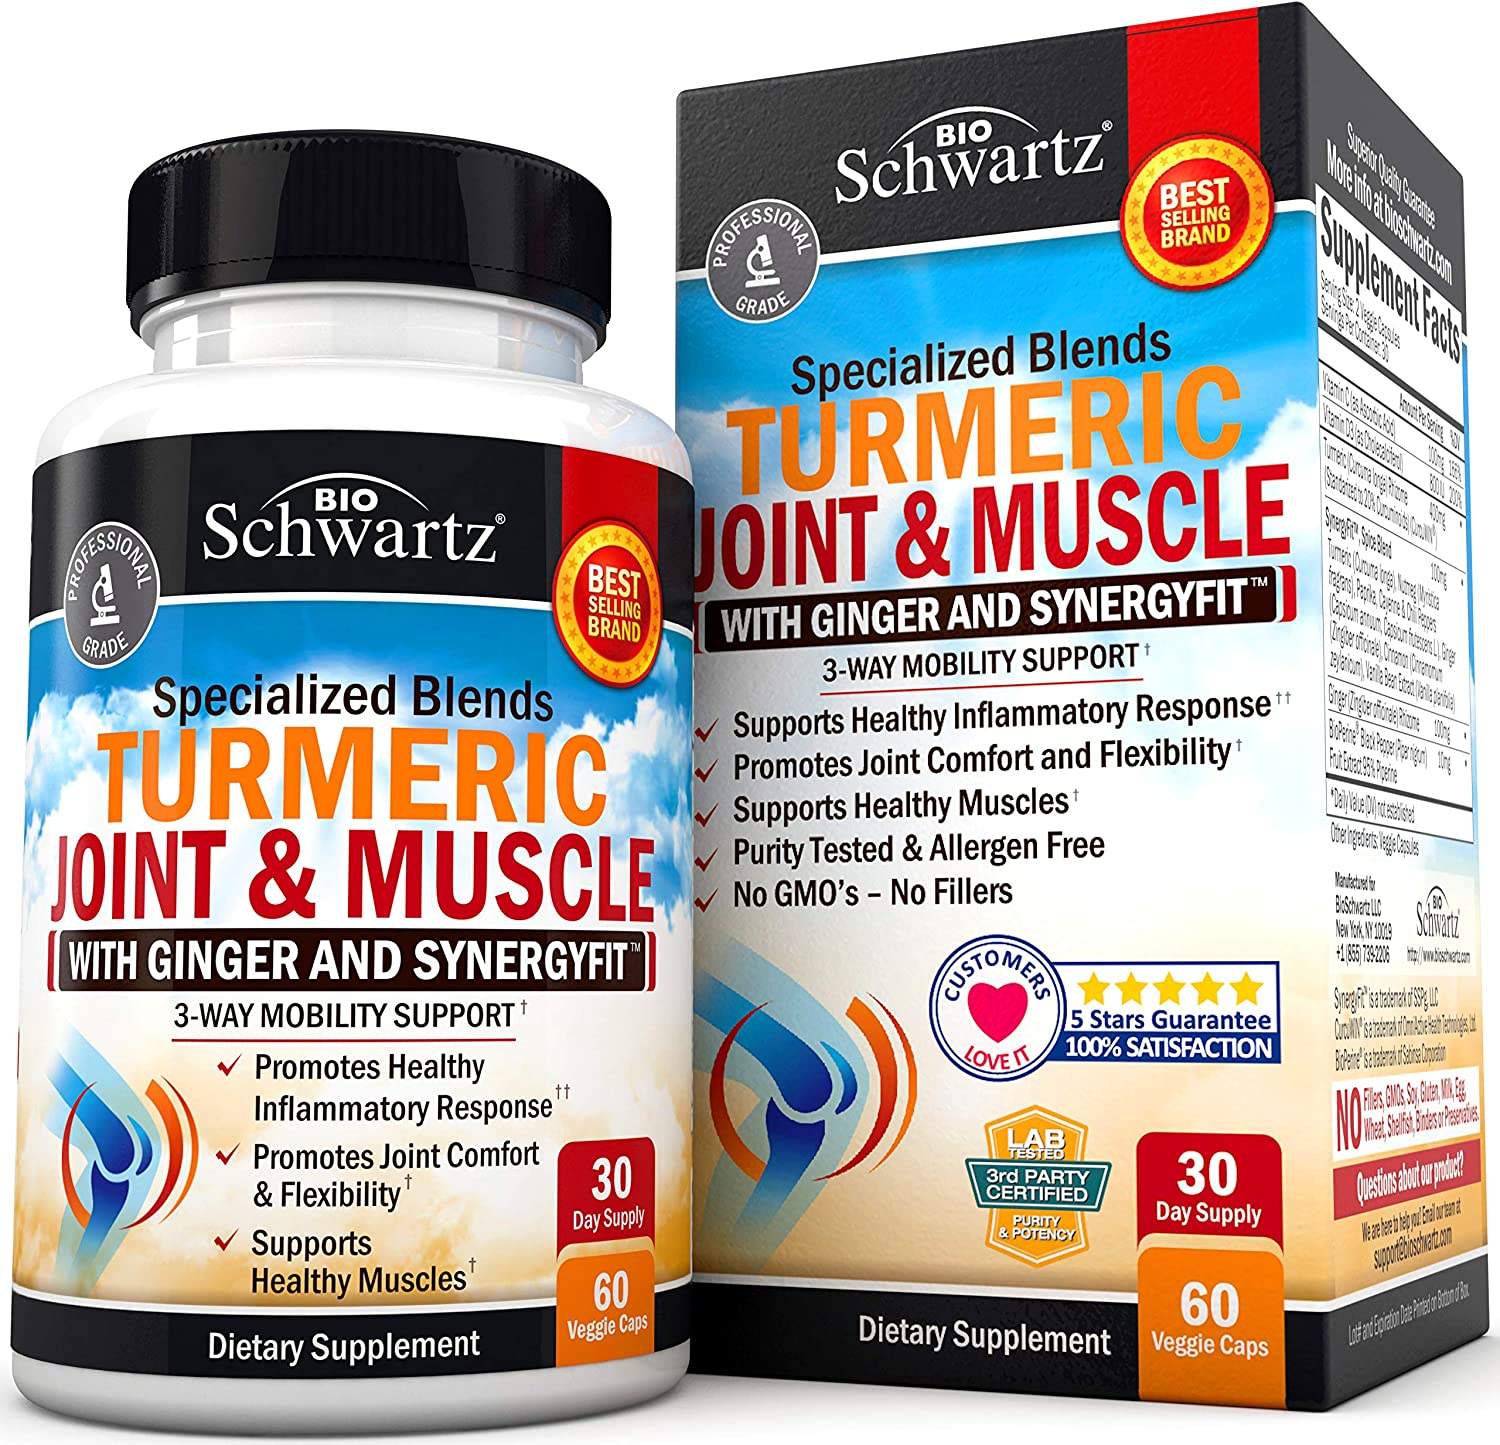 Turmeric Curcumin & Ginger Capsules for Joint Support & Back Pain Relief - Anti Inflammatory Supplement for Muscle Flexibility & Knee Health with BioPerine Black Pepper for Better Absorption